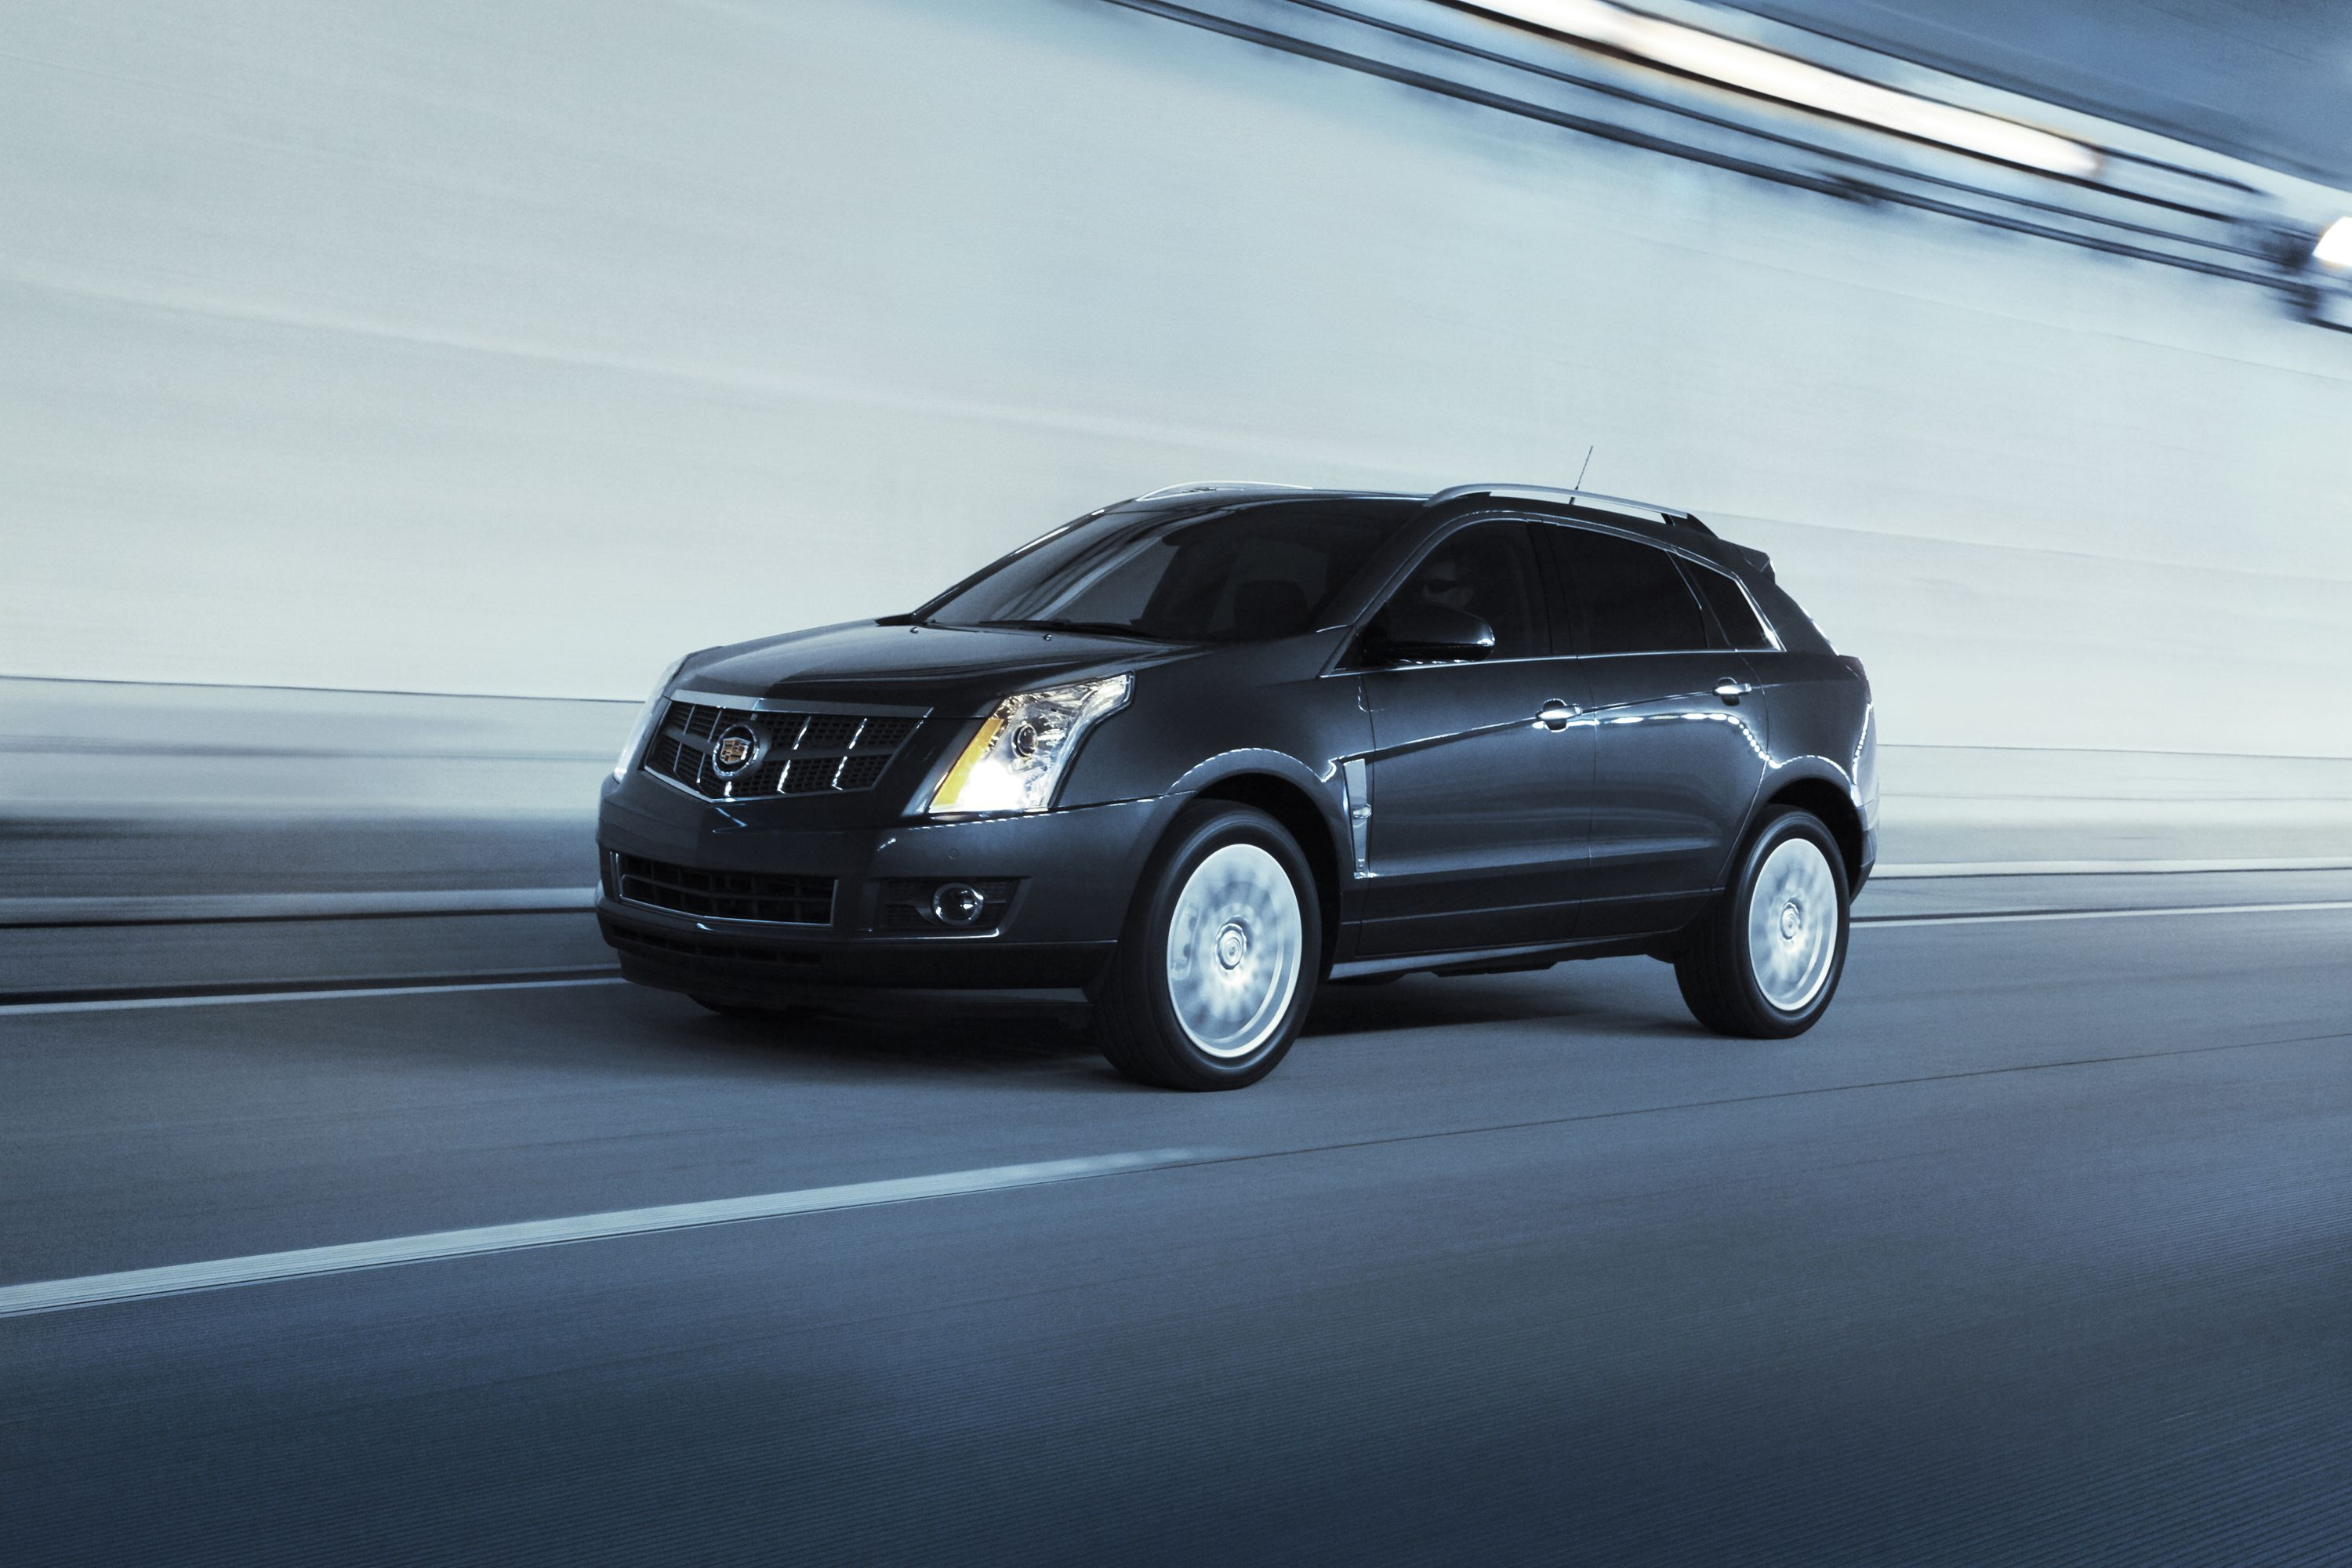 black srx image post cadillac wallpaper